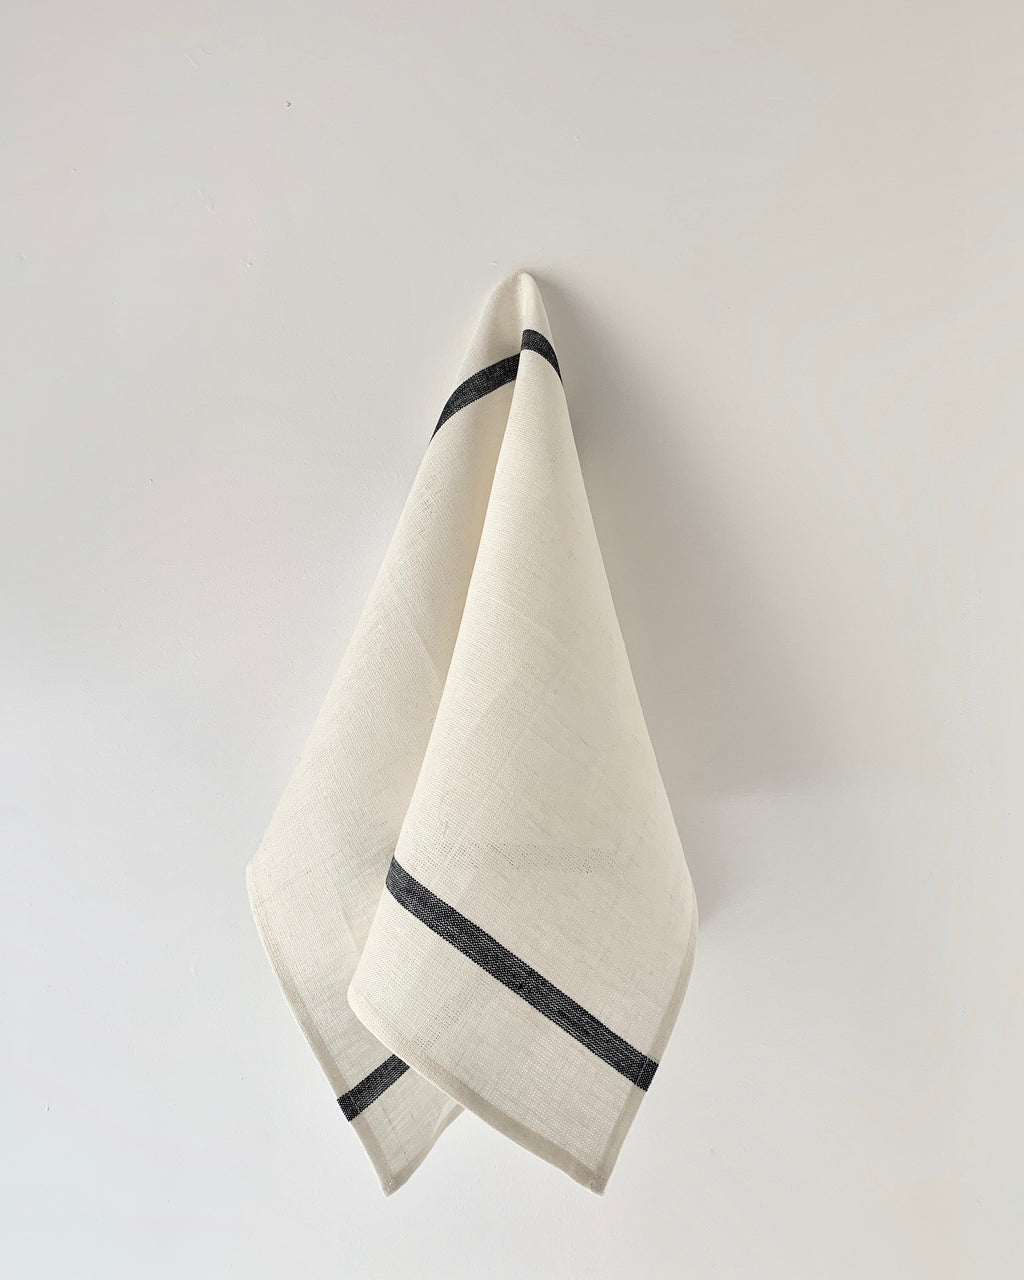 Thick Linen Kitchen Cloth: White with Navy Stripe